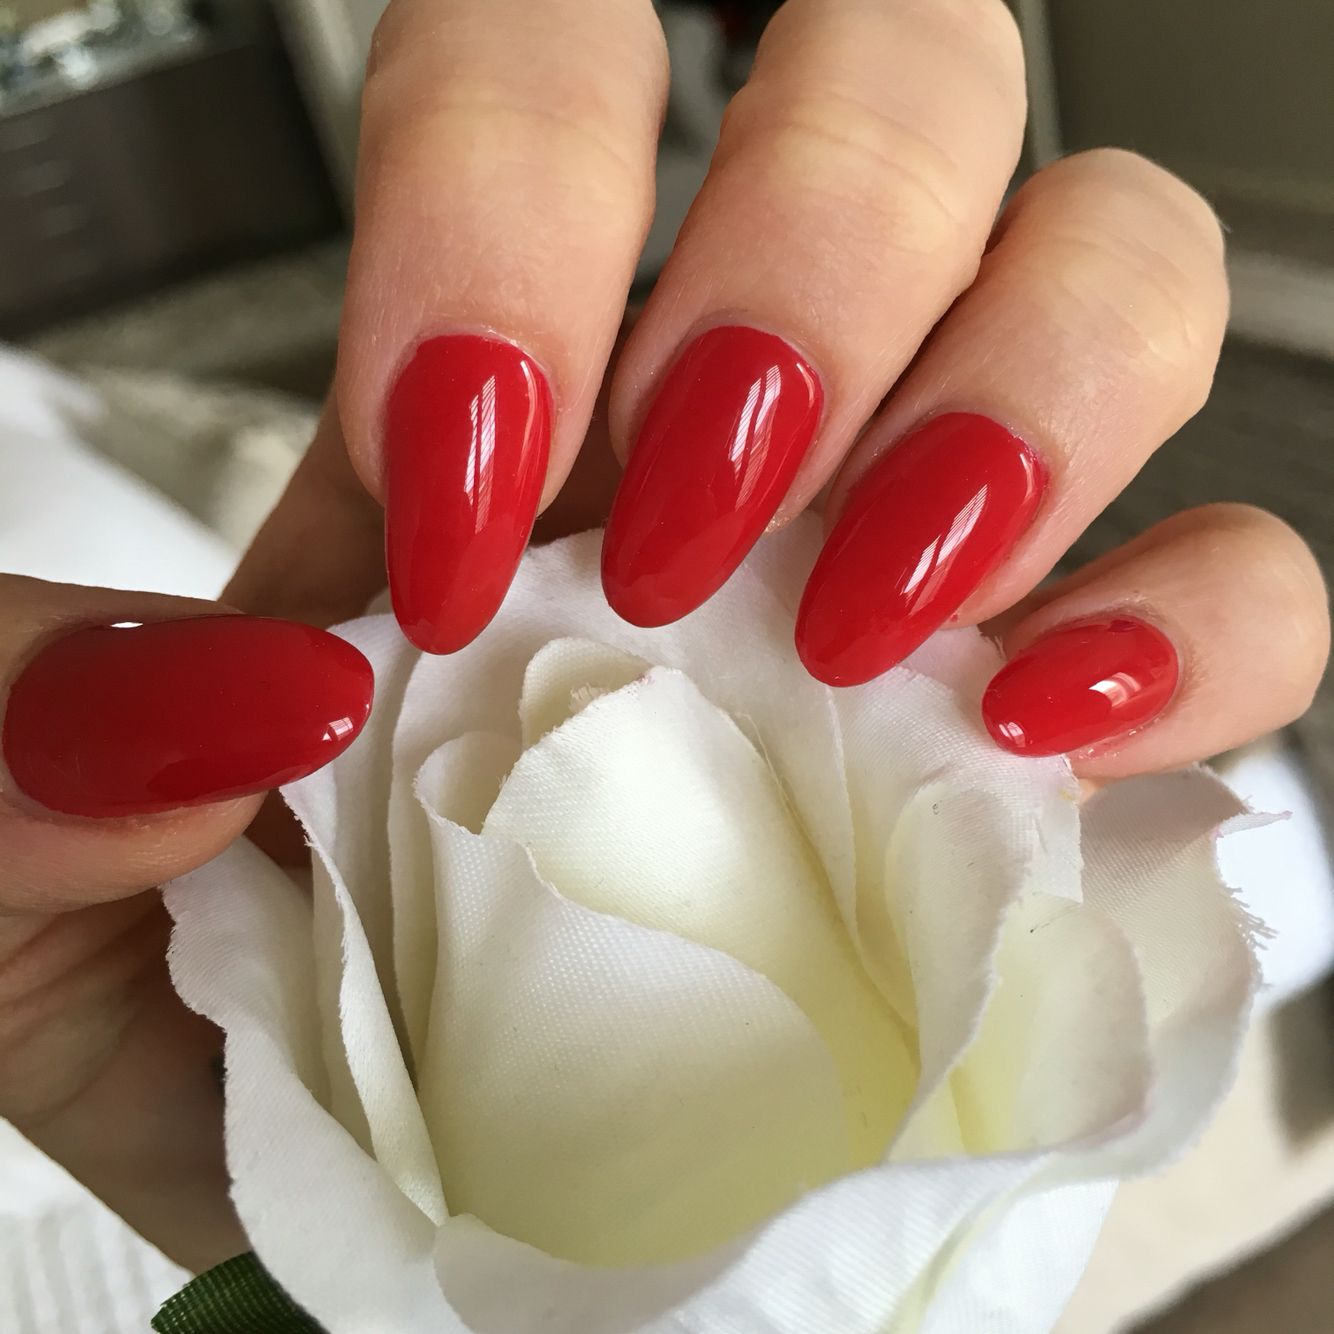 Red acrylic, gel / shellac, chic, almond shape nails, simple ...